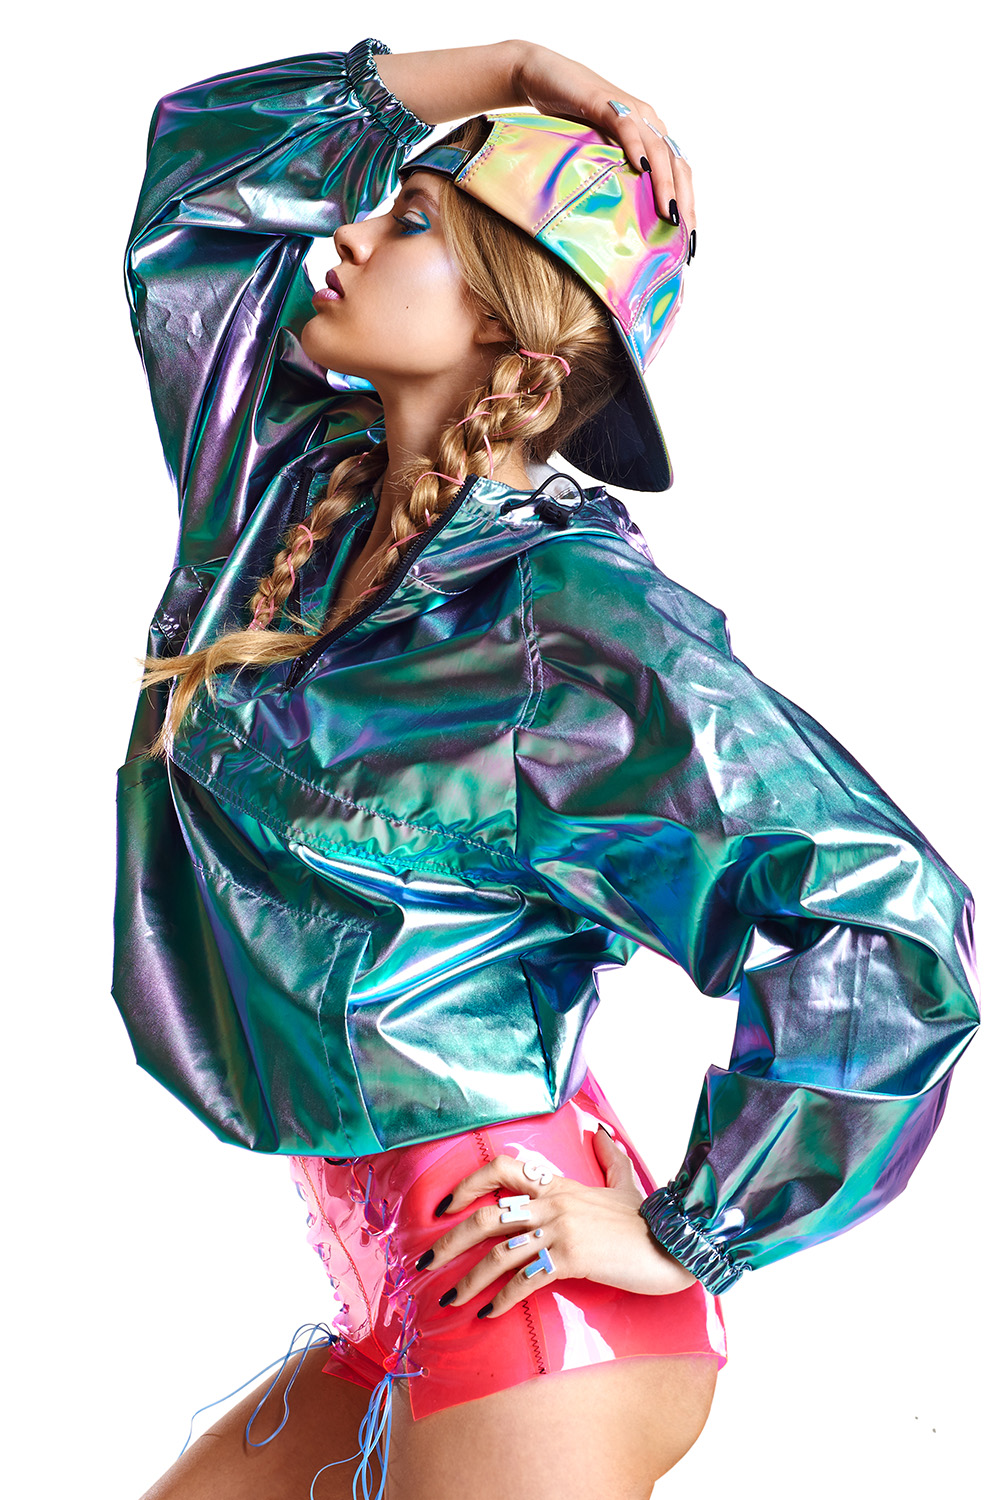 Fashion Editorial - Fantastic Plastic6